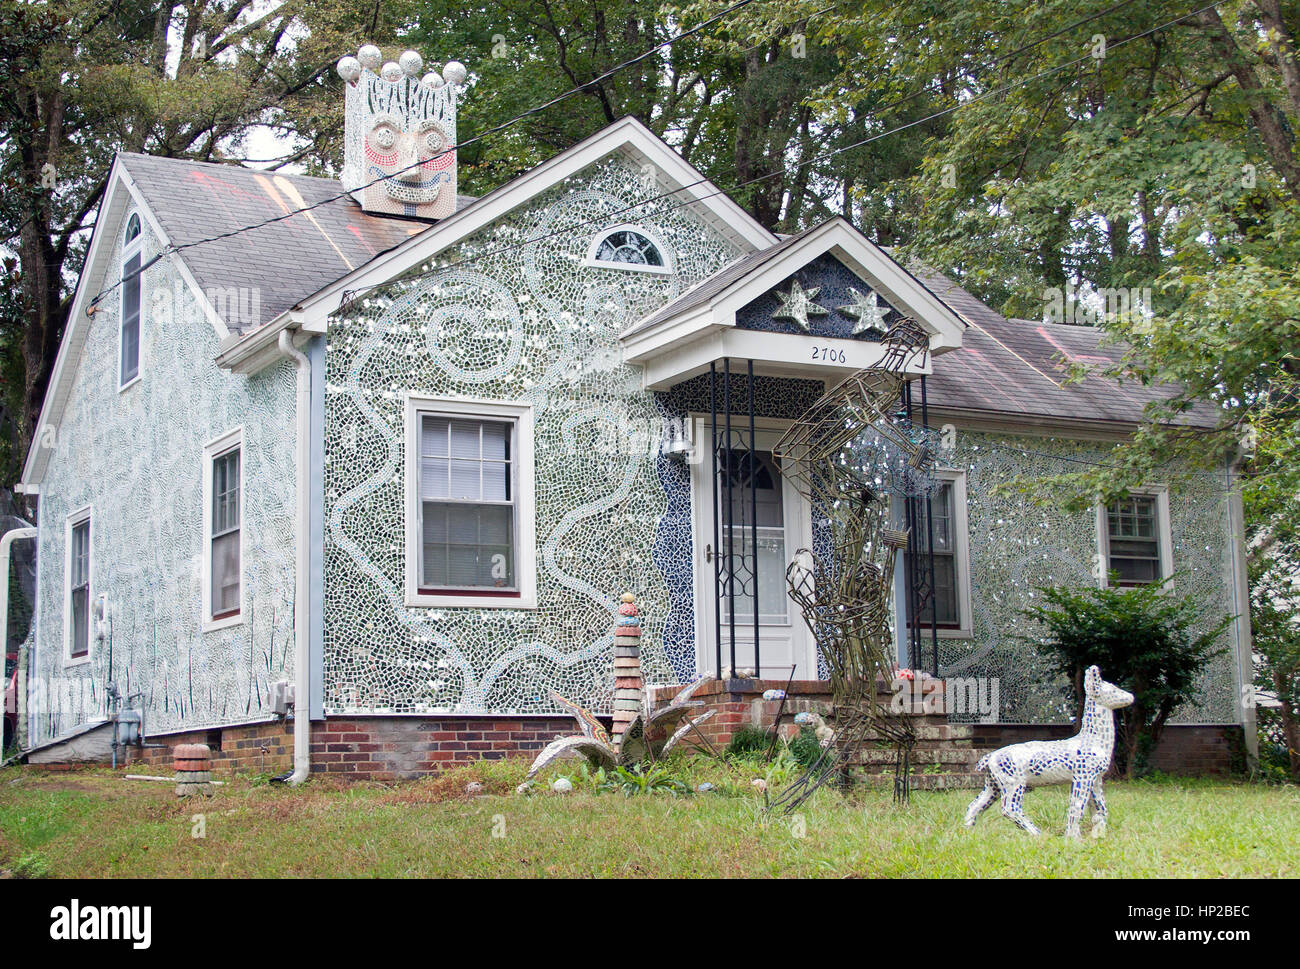 Gene Dillard Mosaic House in Durham North Carolina - Stock Image